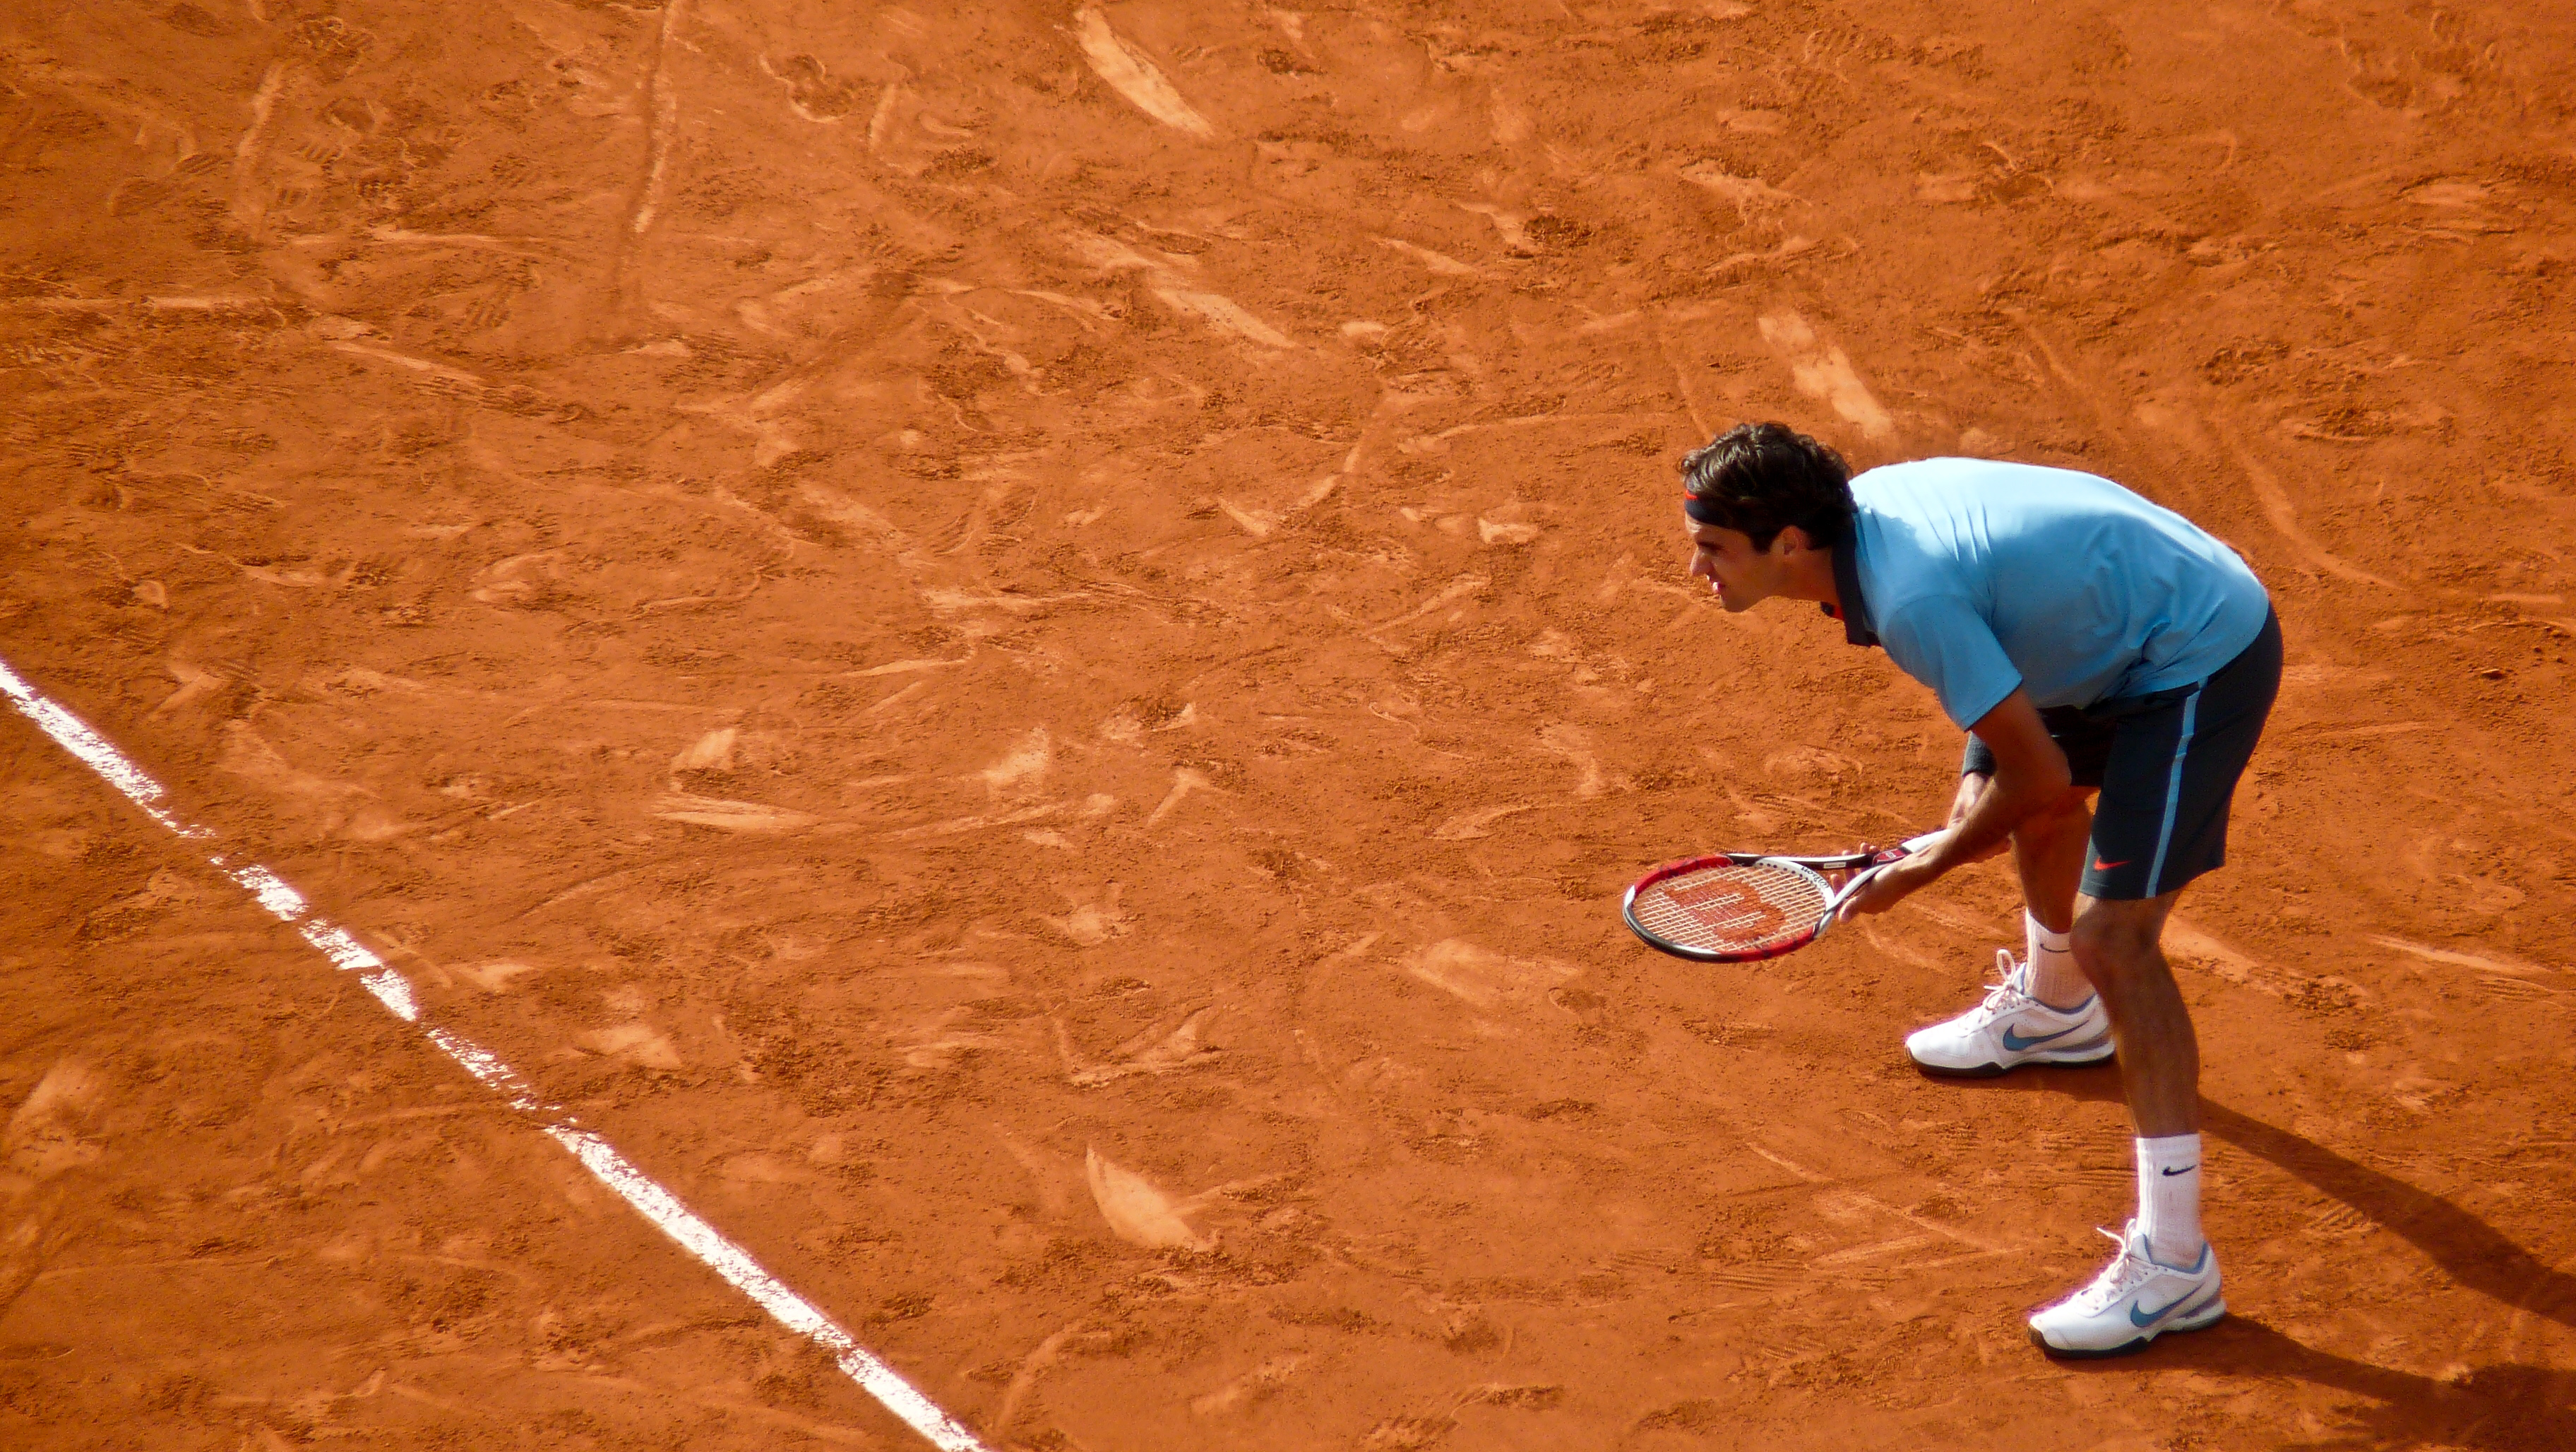 French Open tennis court wallpaper